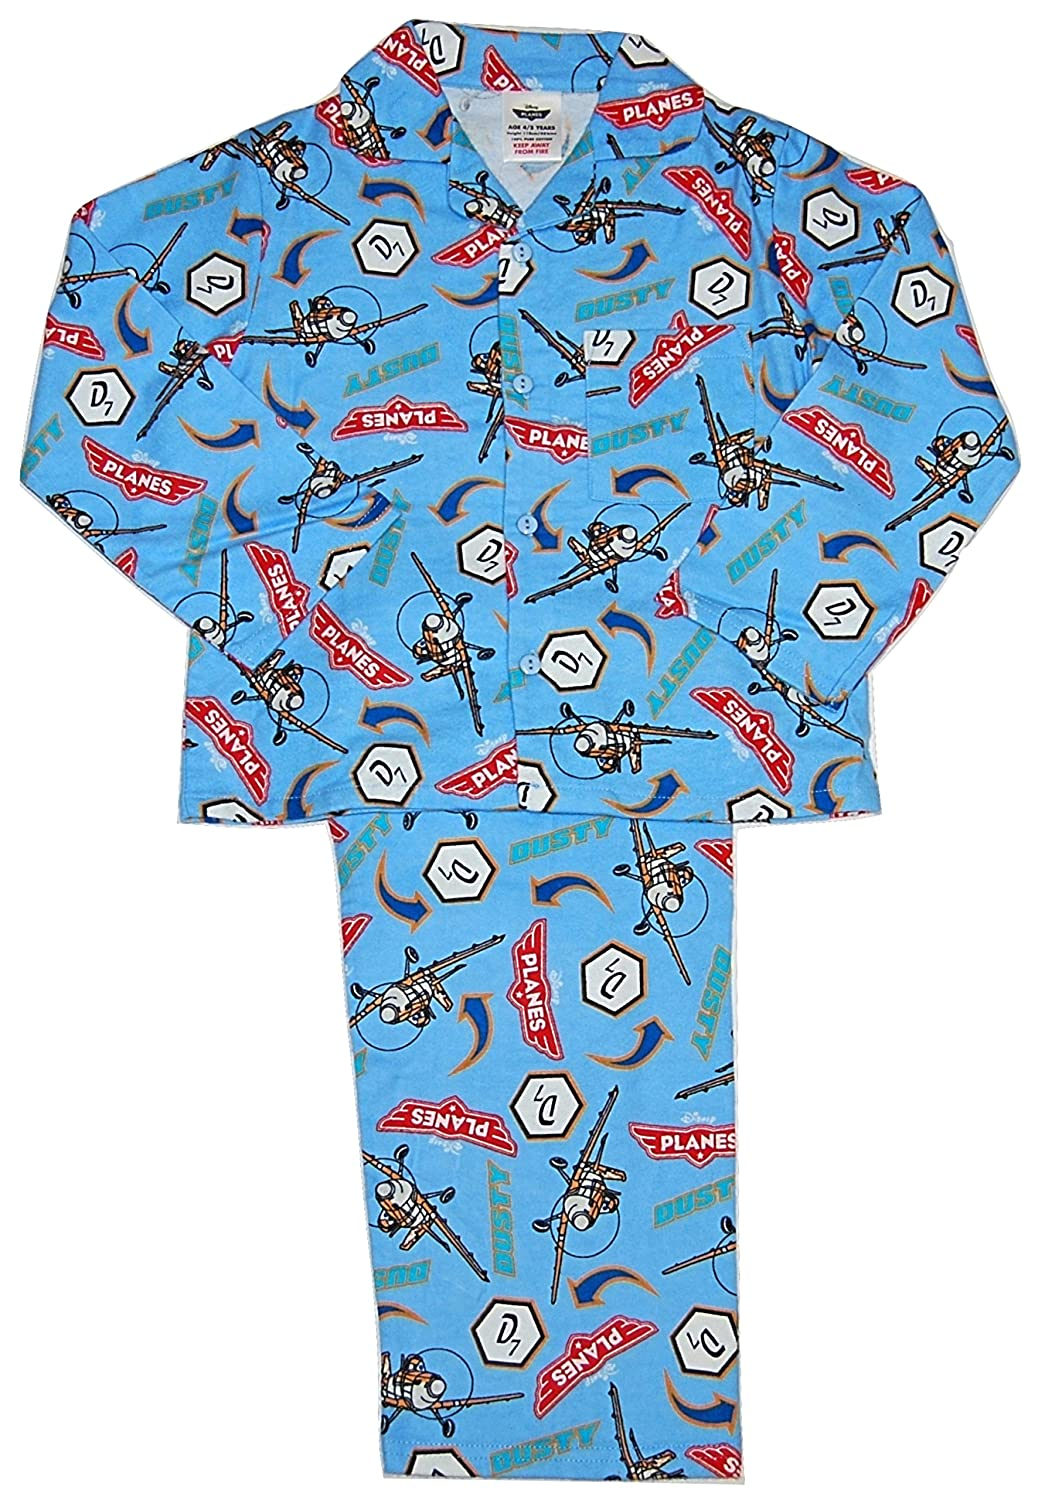 BOYS DUSTY PLANES COTTON ALL IN ONE SIZES 4//5-5//6-6//7 YEARS  Cotton